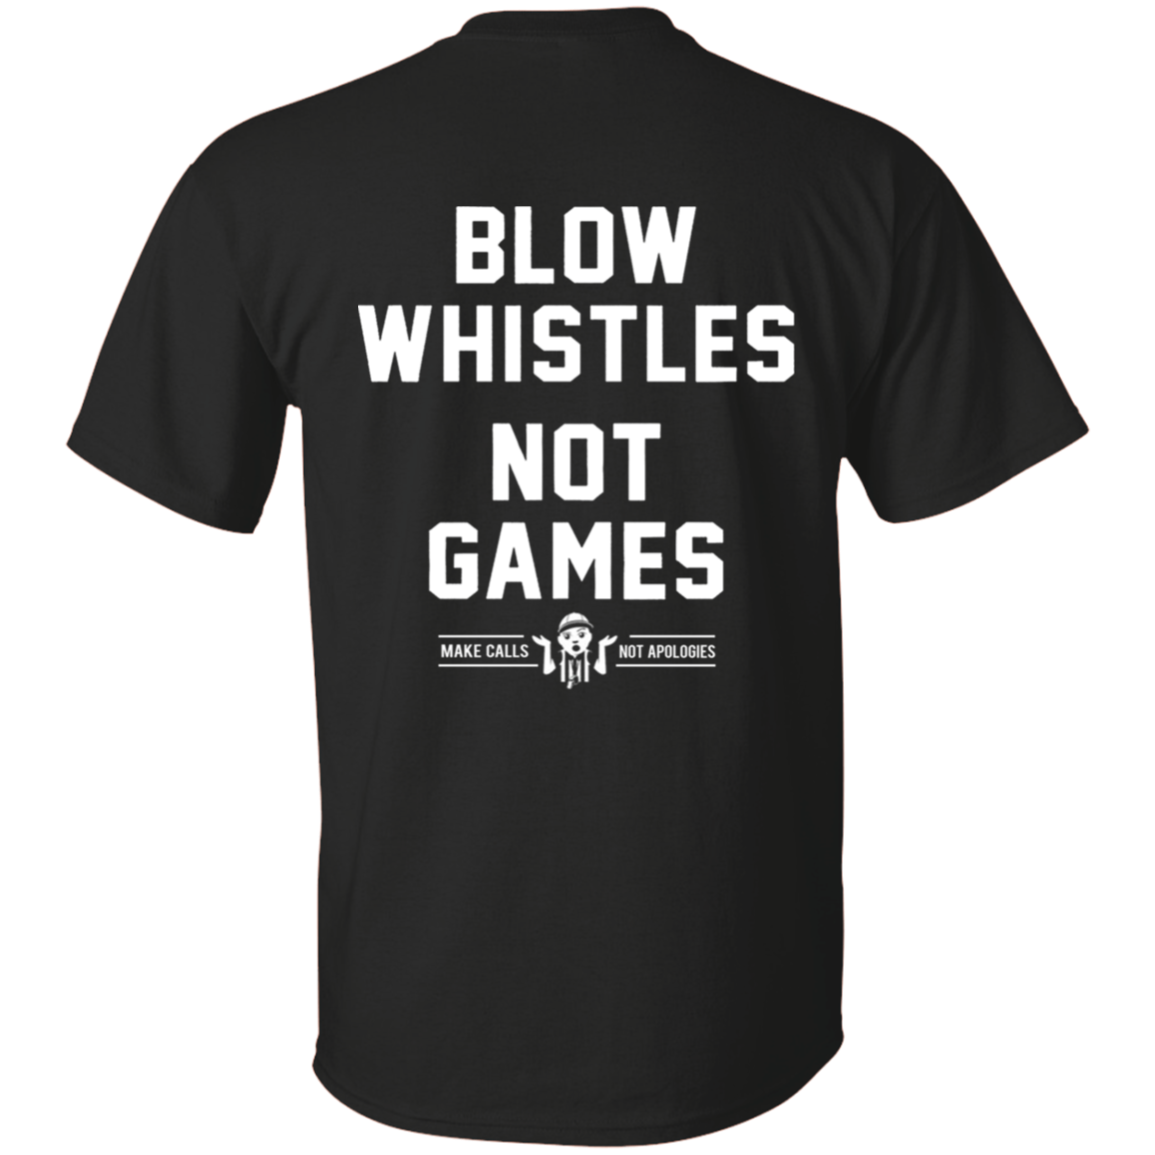 Blow Whistles Not Games Shirt